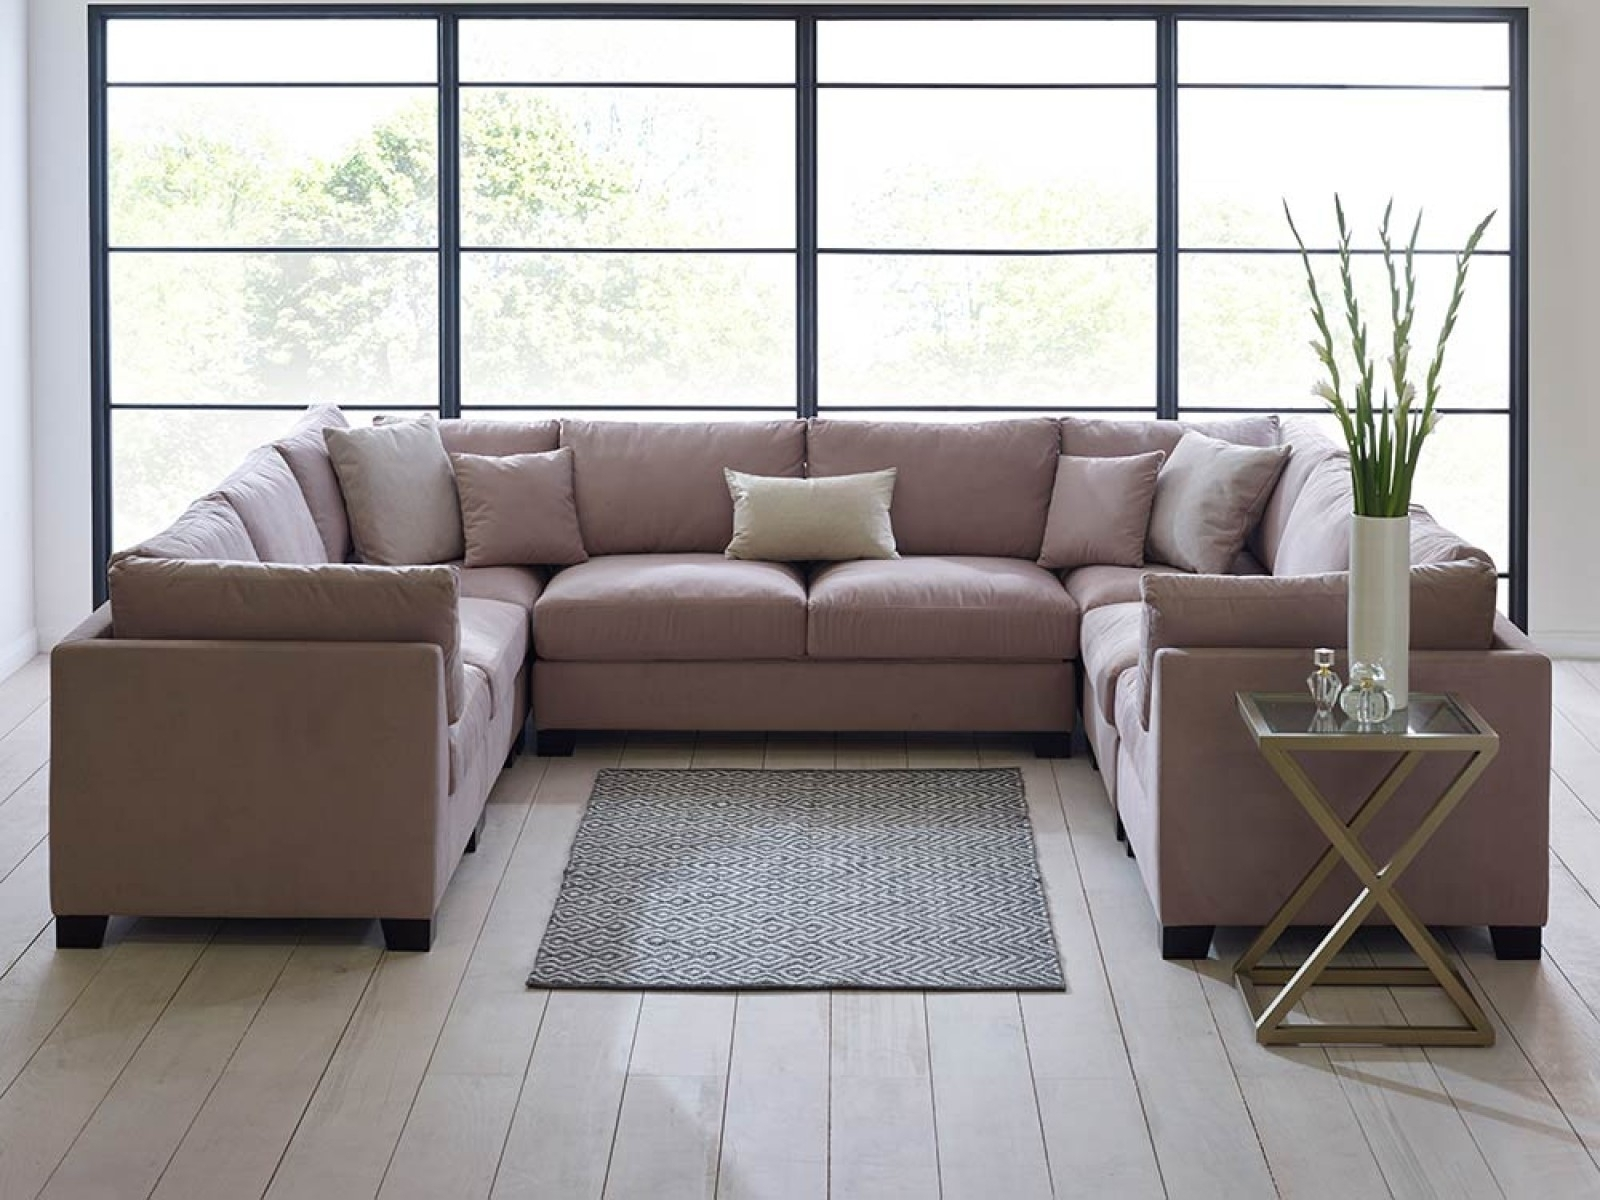 U Shaped Leather Sectional Sofas Intended For Recent U Shaped Sofa – Google Search (View 10 of 15)